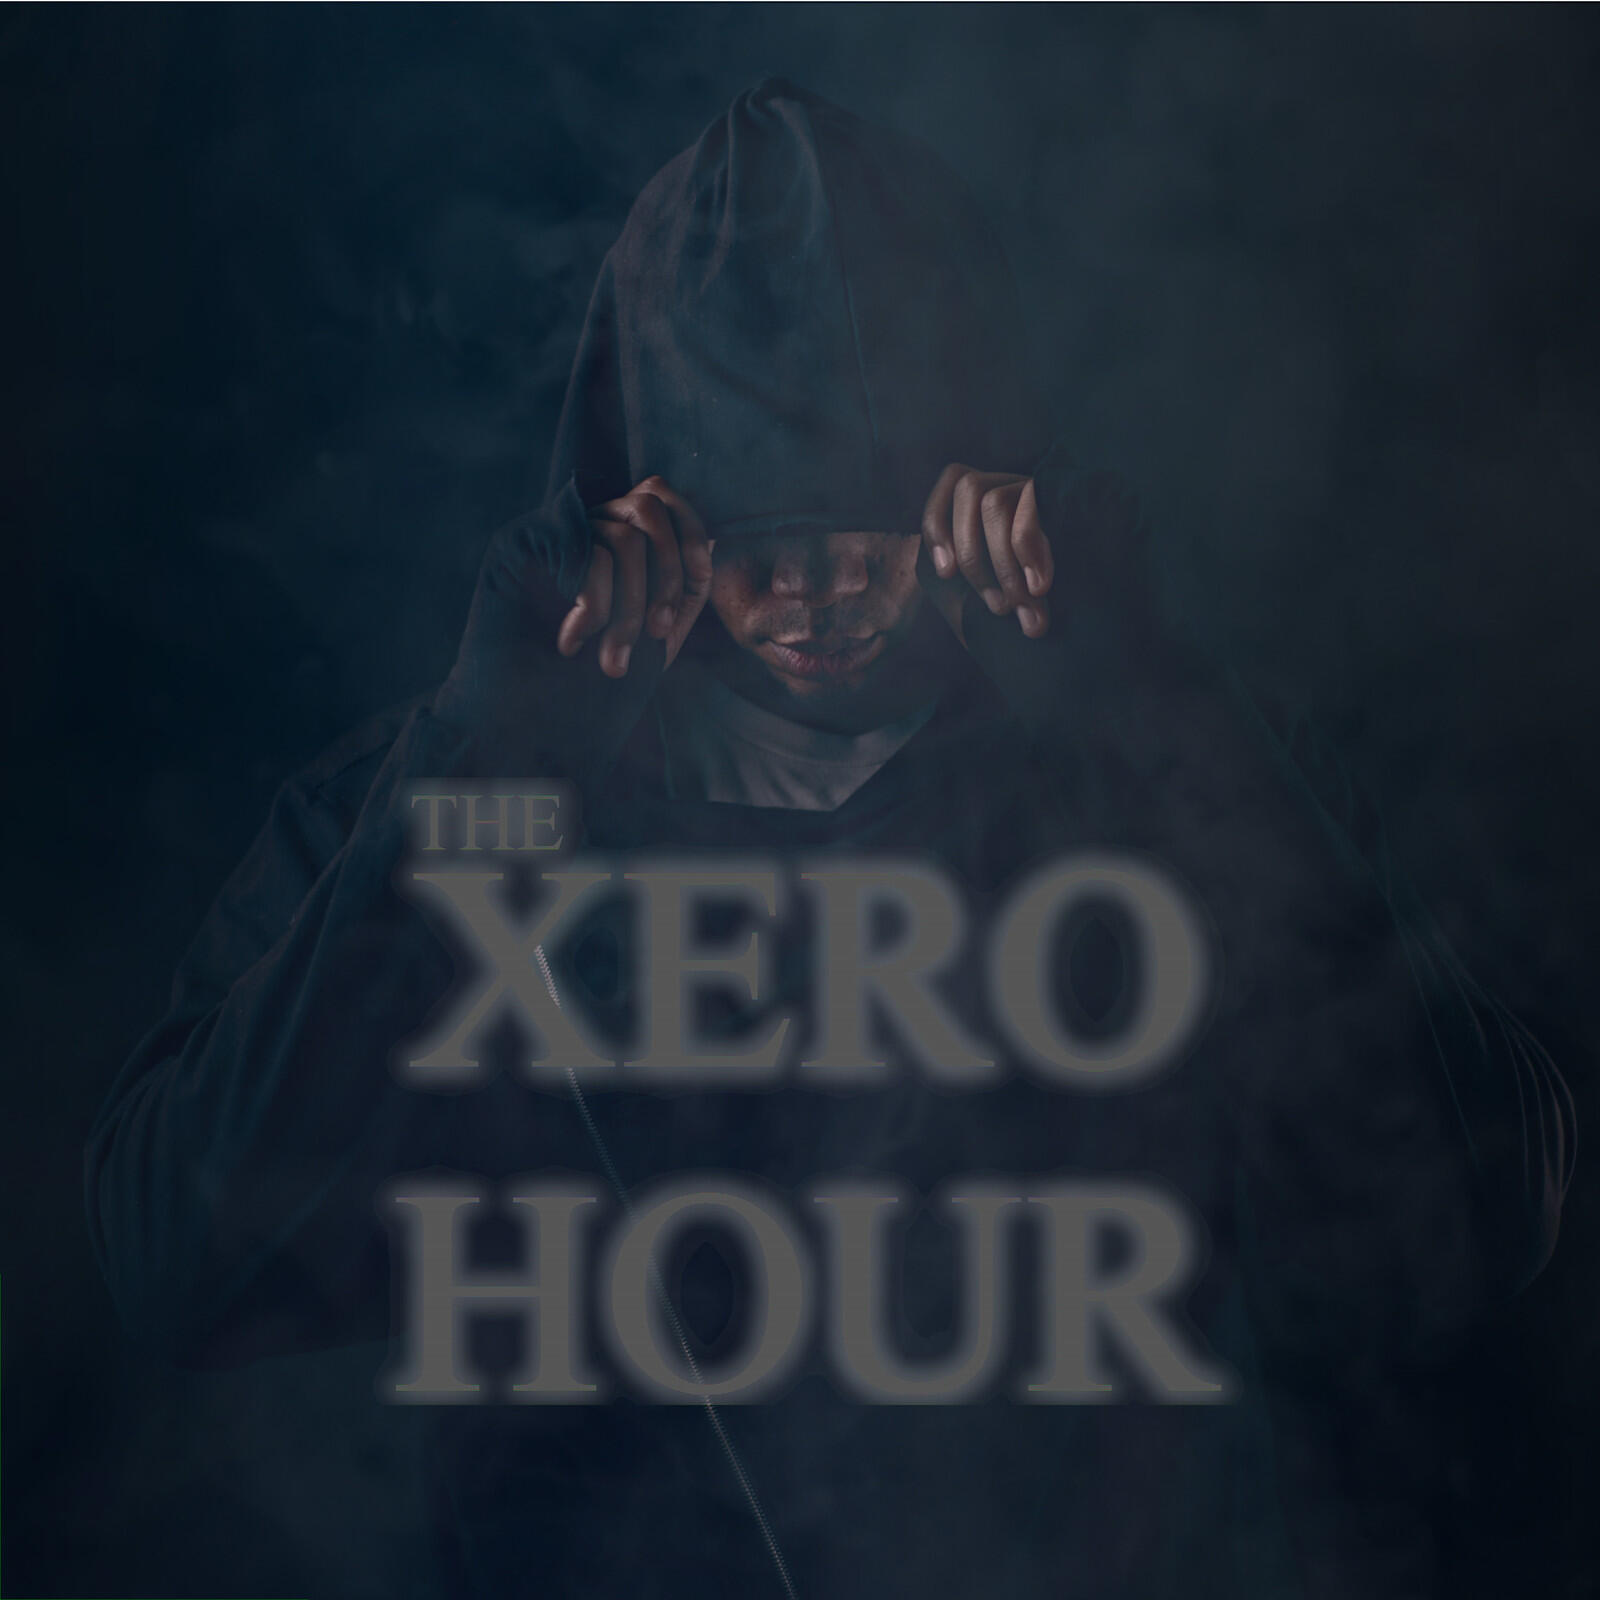 52: Xero Hour Podcast 52 - Rappers in Politics